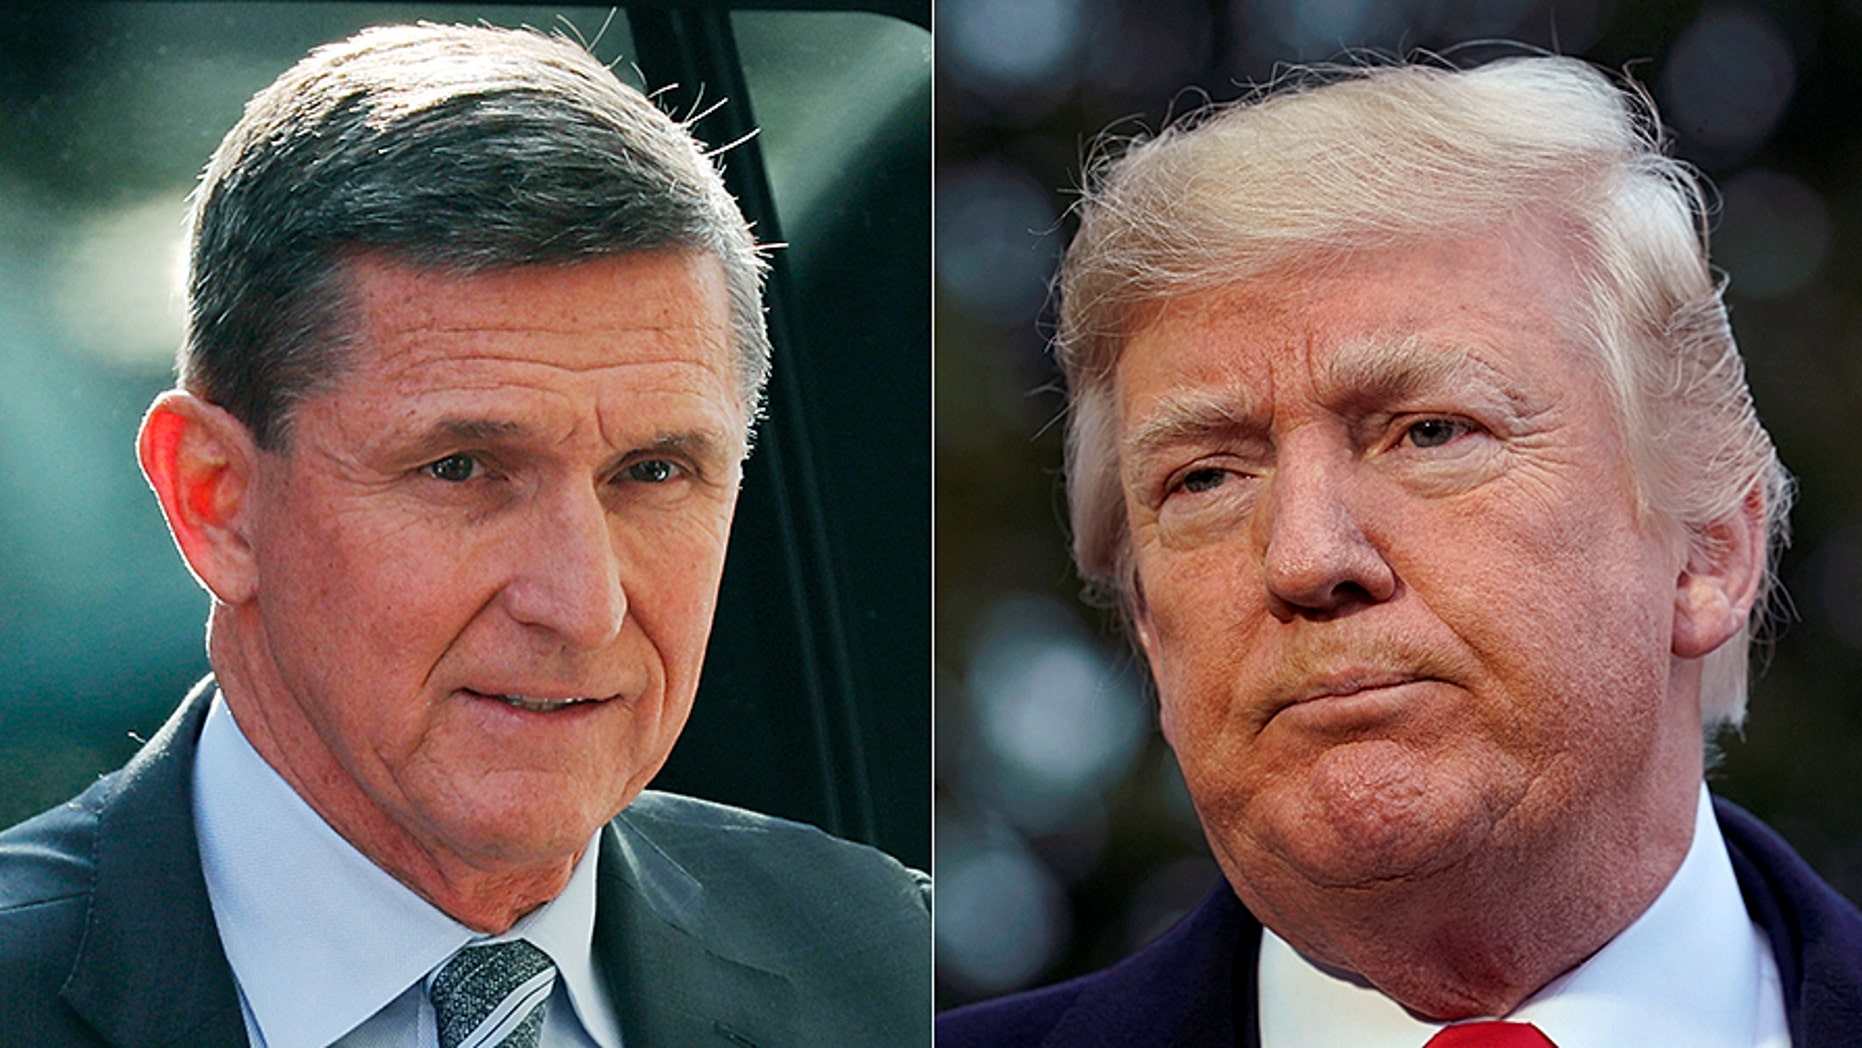 Former Marine Lt. Gen. Michael Flynn pleaded guilty Dec. 1 to lying to the FBI, but there is speculation President Trump could pardon him